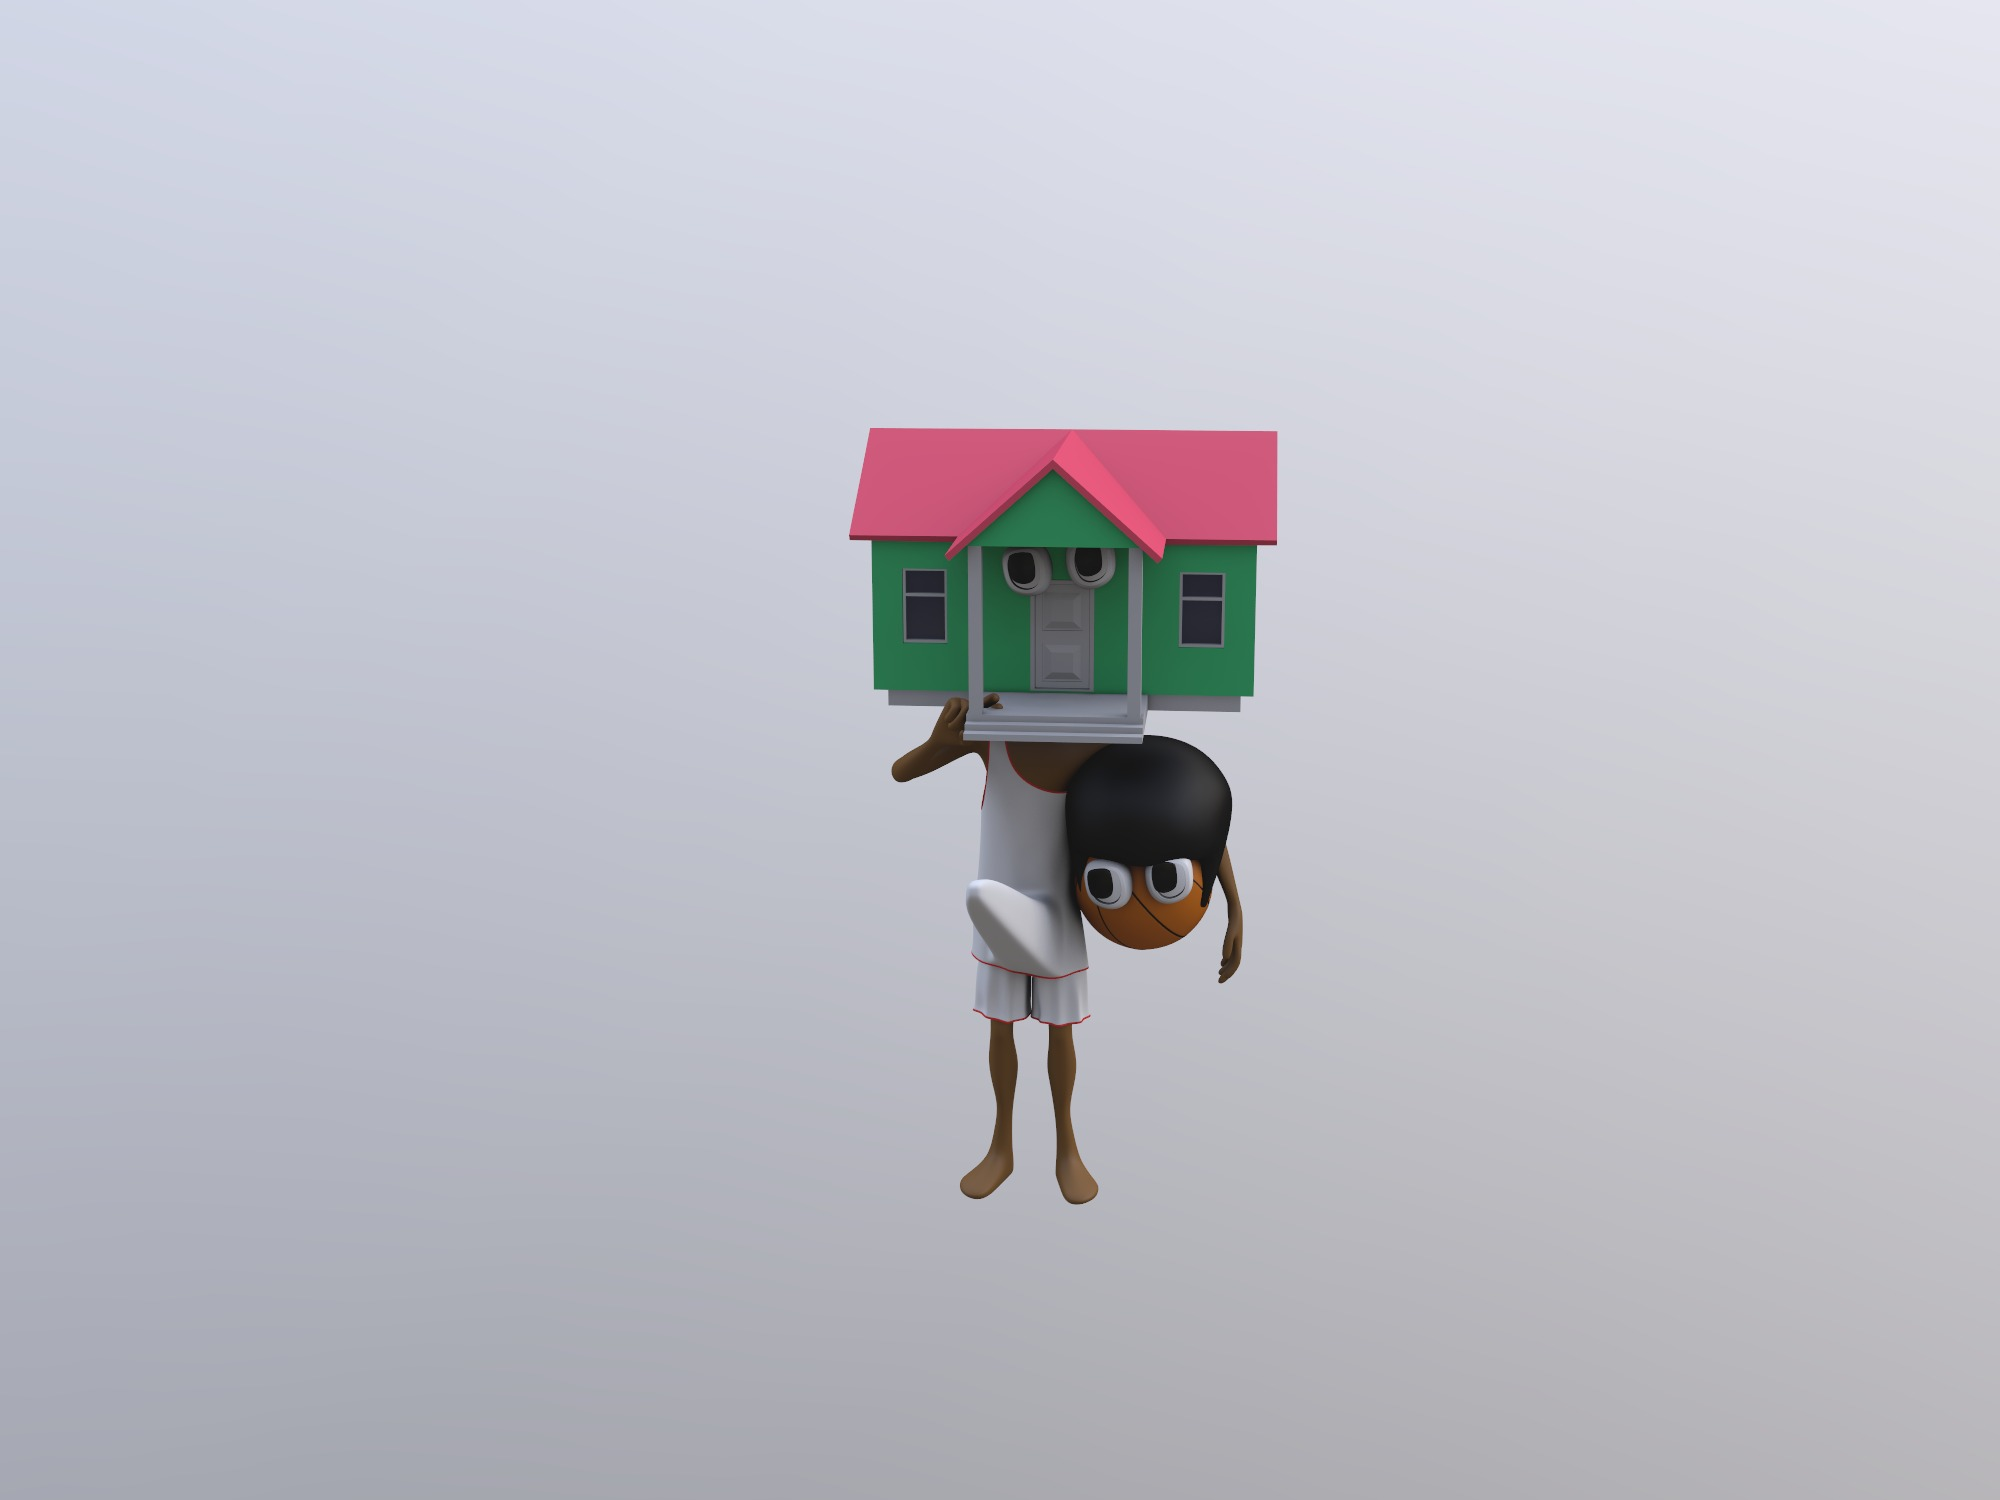 Brandon the house erected - 3D design by Mr judía 666 on Nov 13, 2018